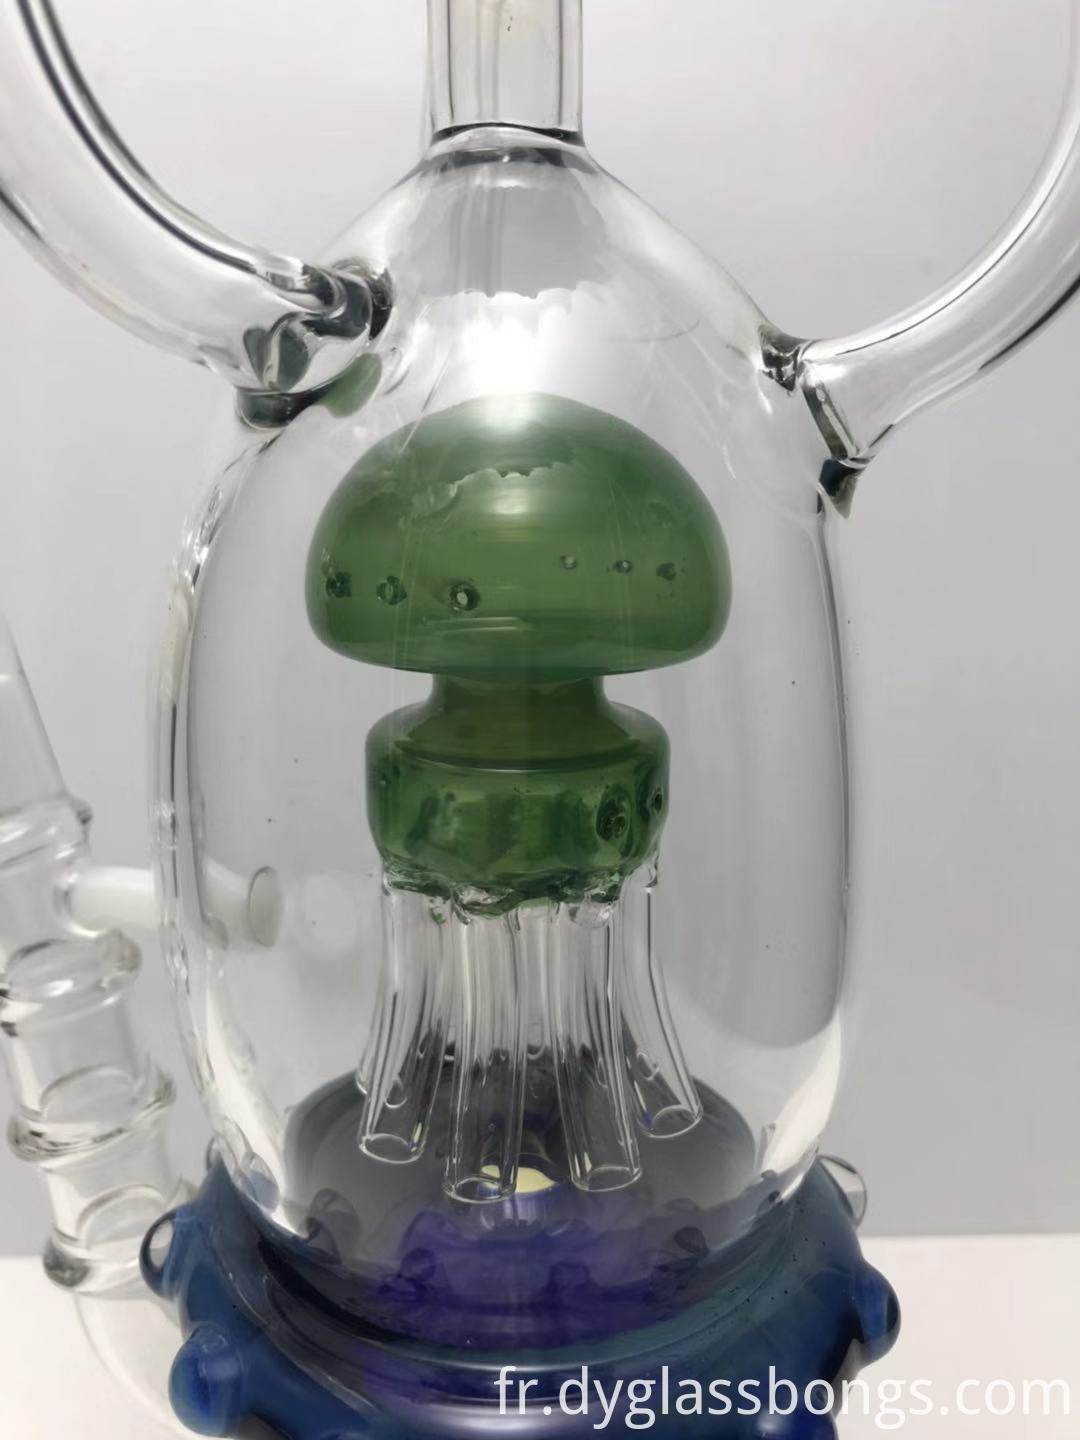 Two 8-Arm Sprinklers Recycler glass bong3